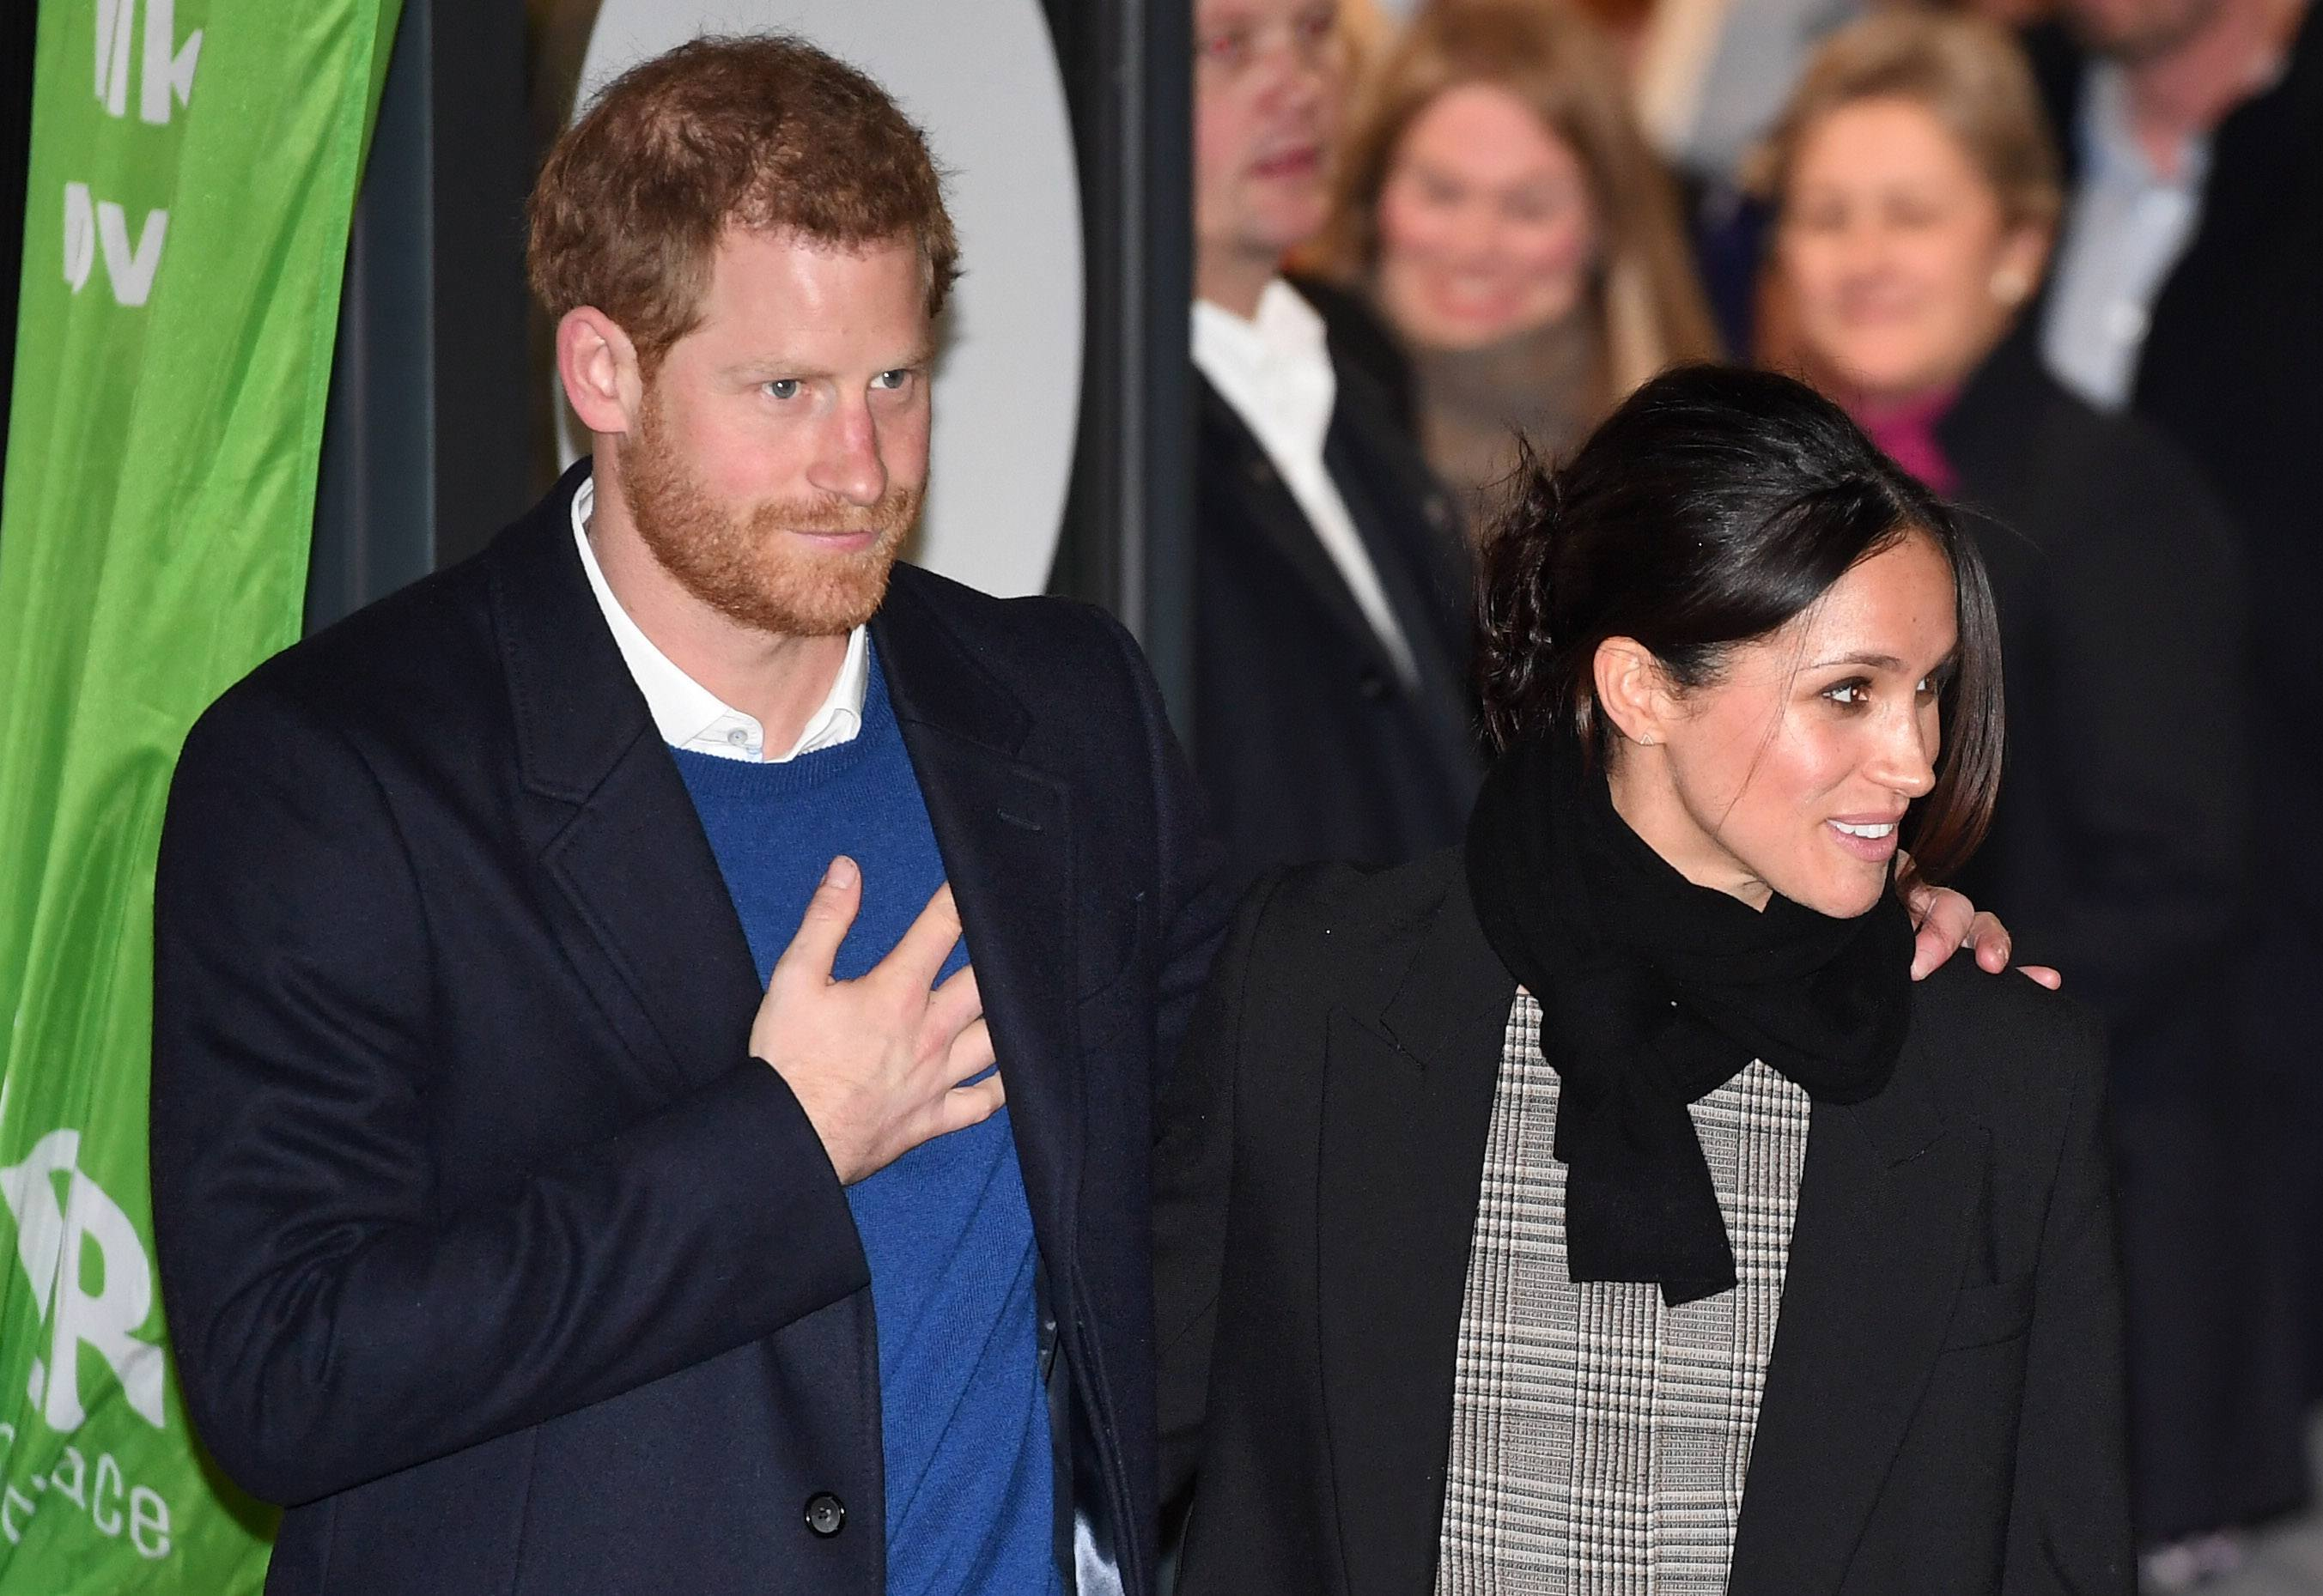 Prince Harry (L) and fiancee Meghan Markle leave after their visit to Star Hub